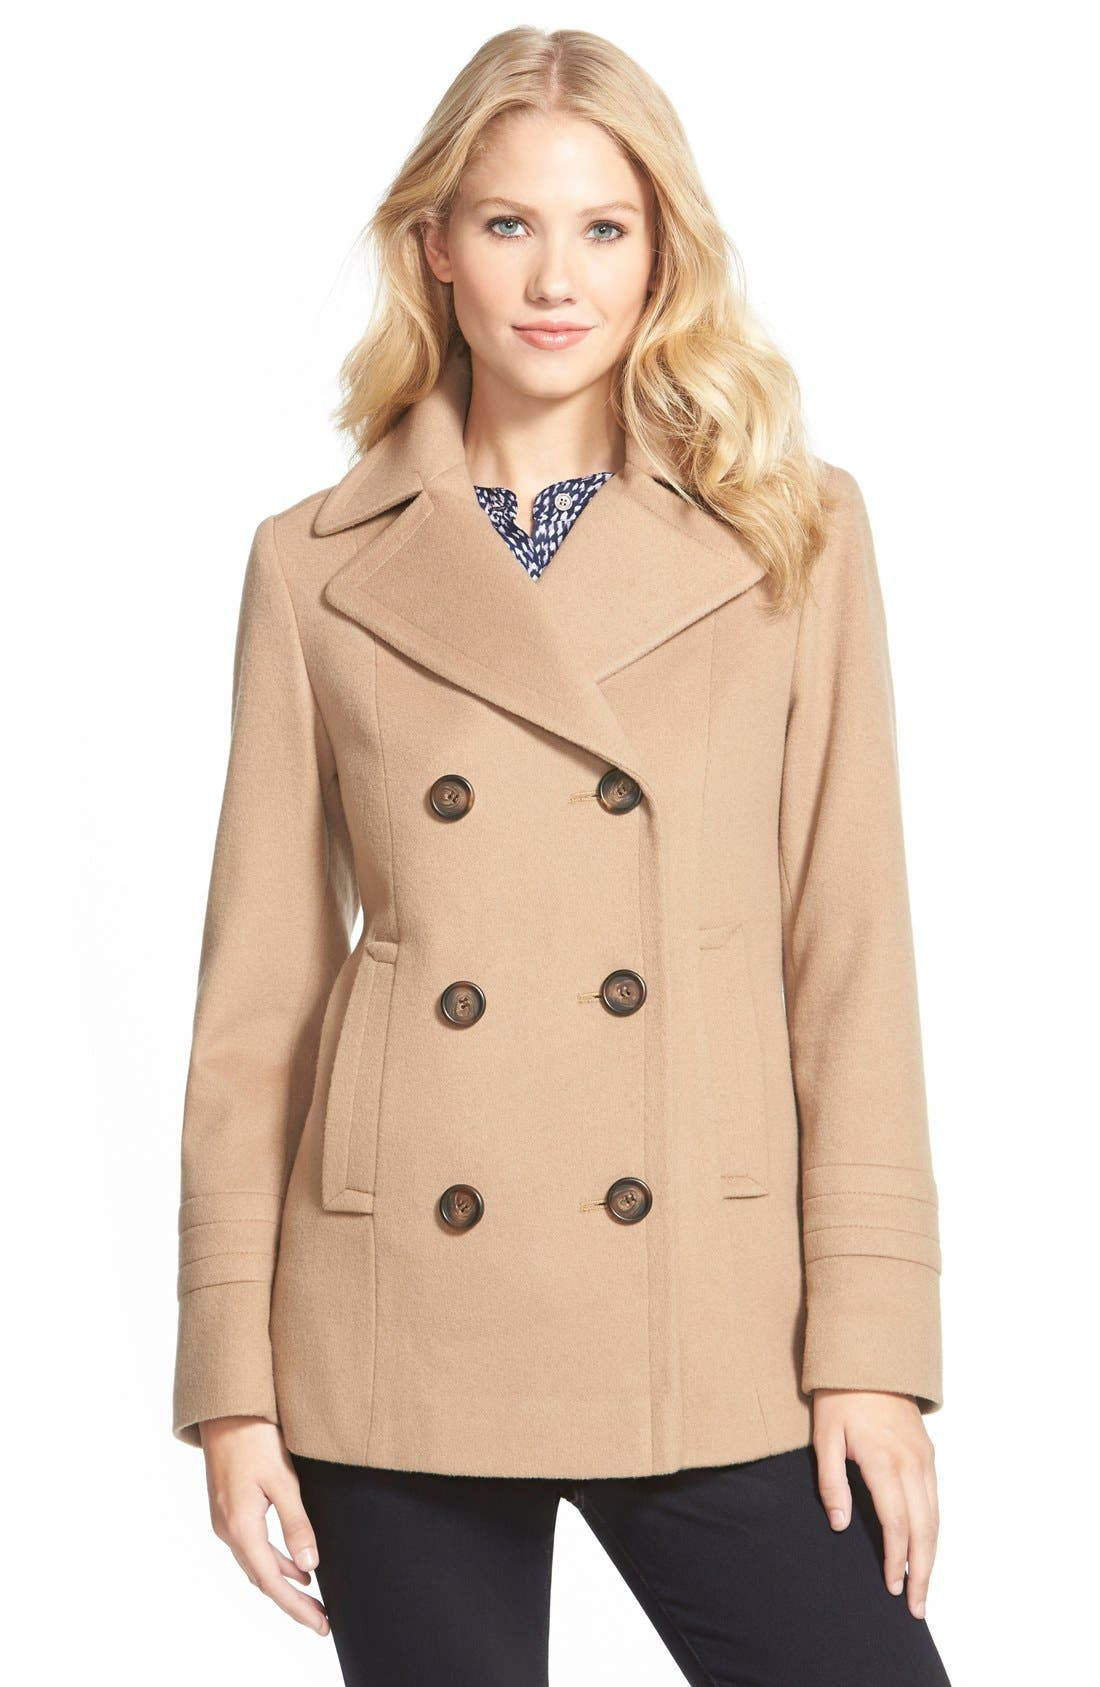 Alternate Image 1 Selected - Fleurette Wool Peacoat (Nordstrom Exclusive)